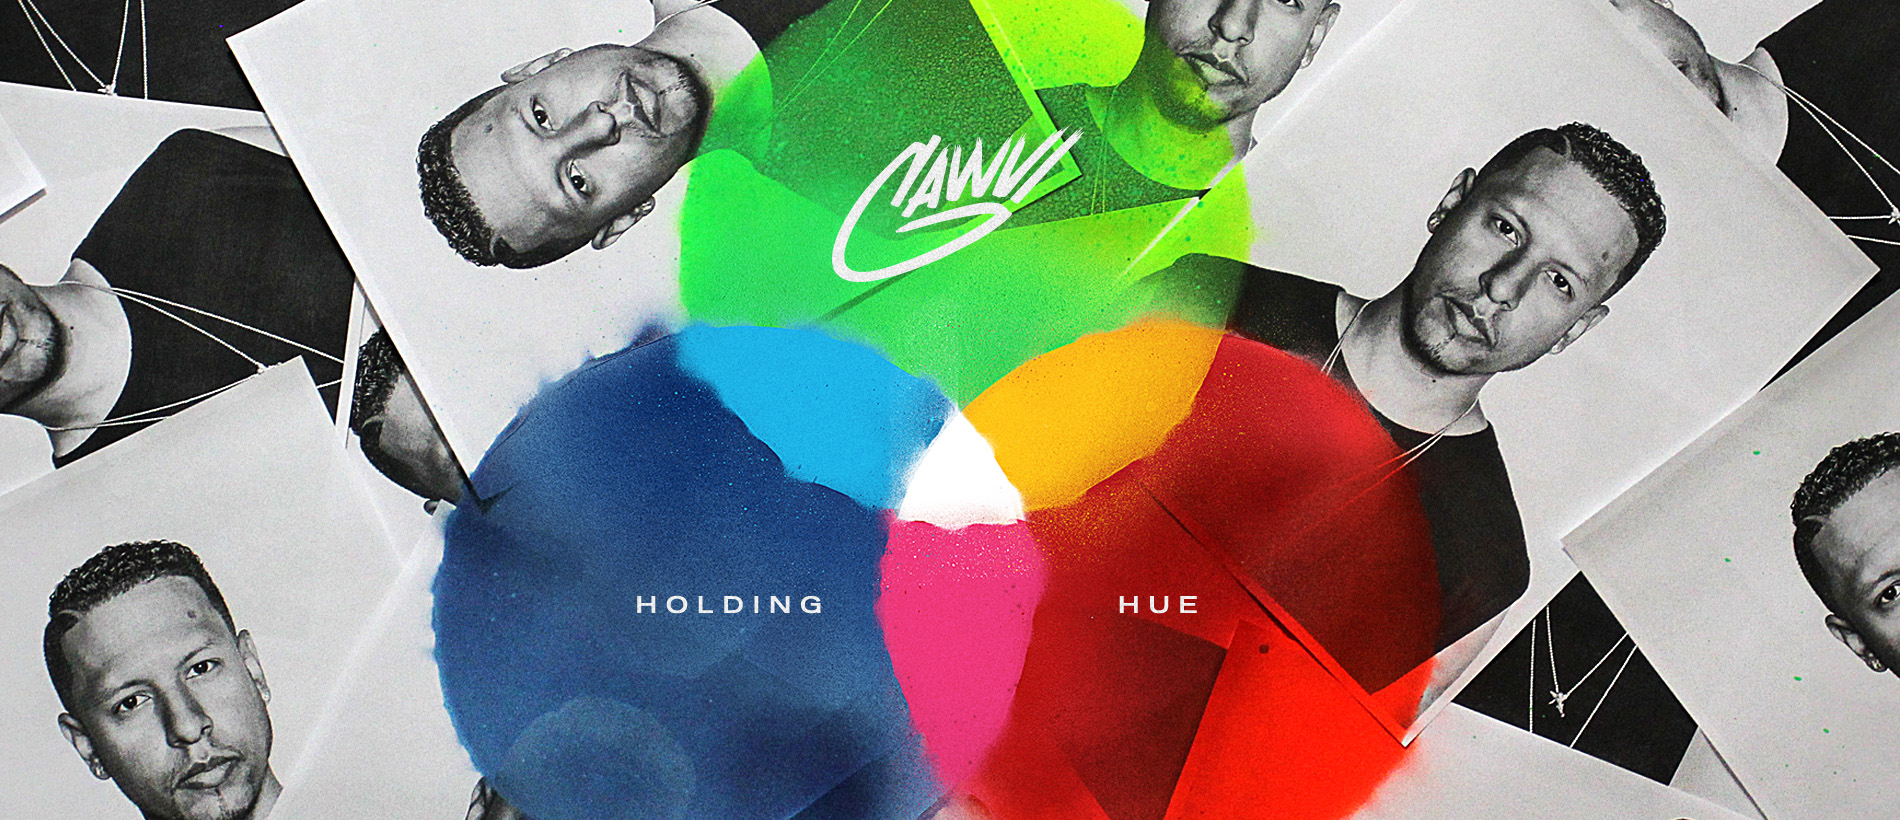 GAWVI X HOLDING HUE X OUT NOW